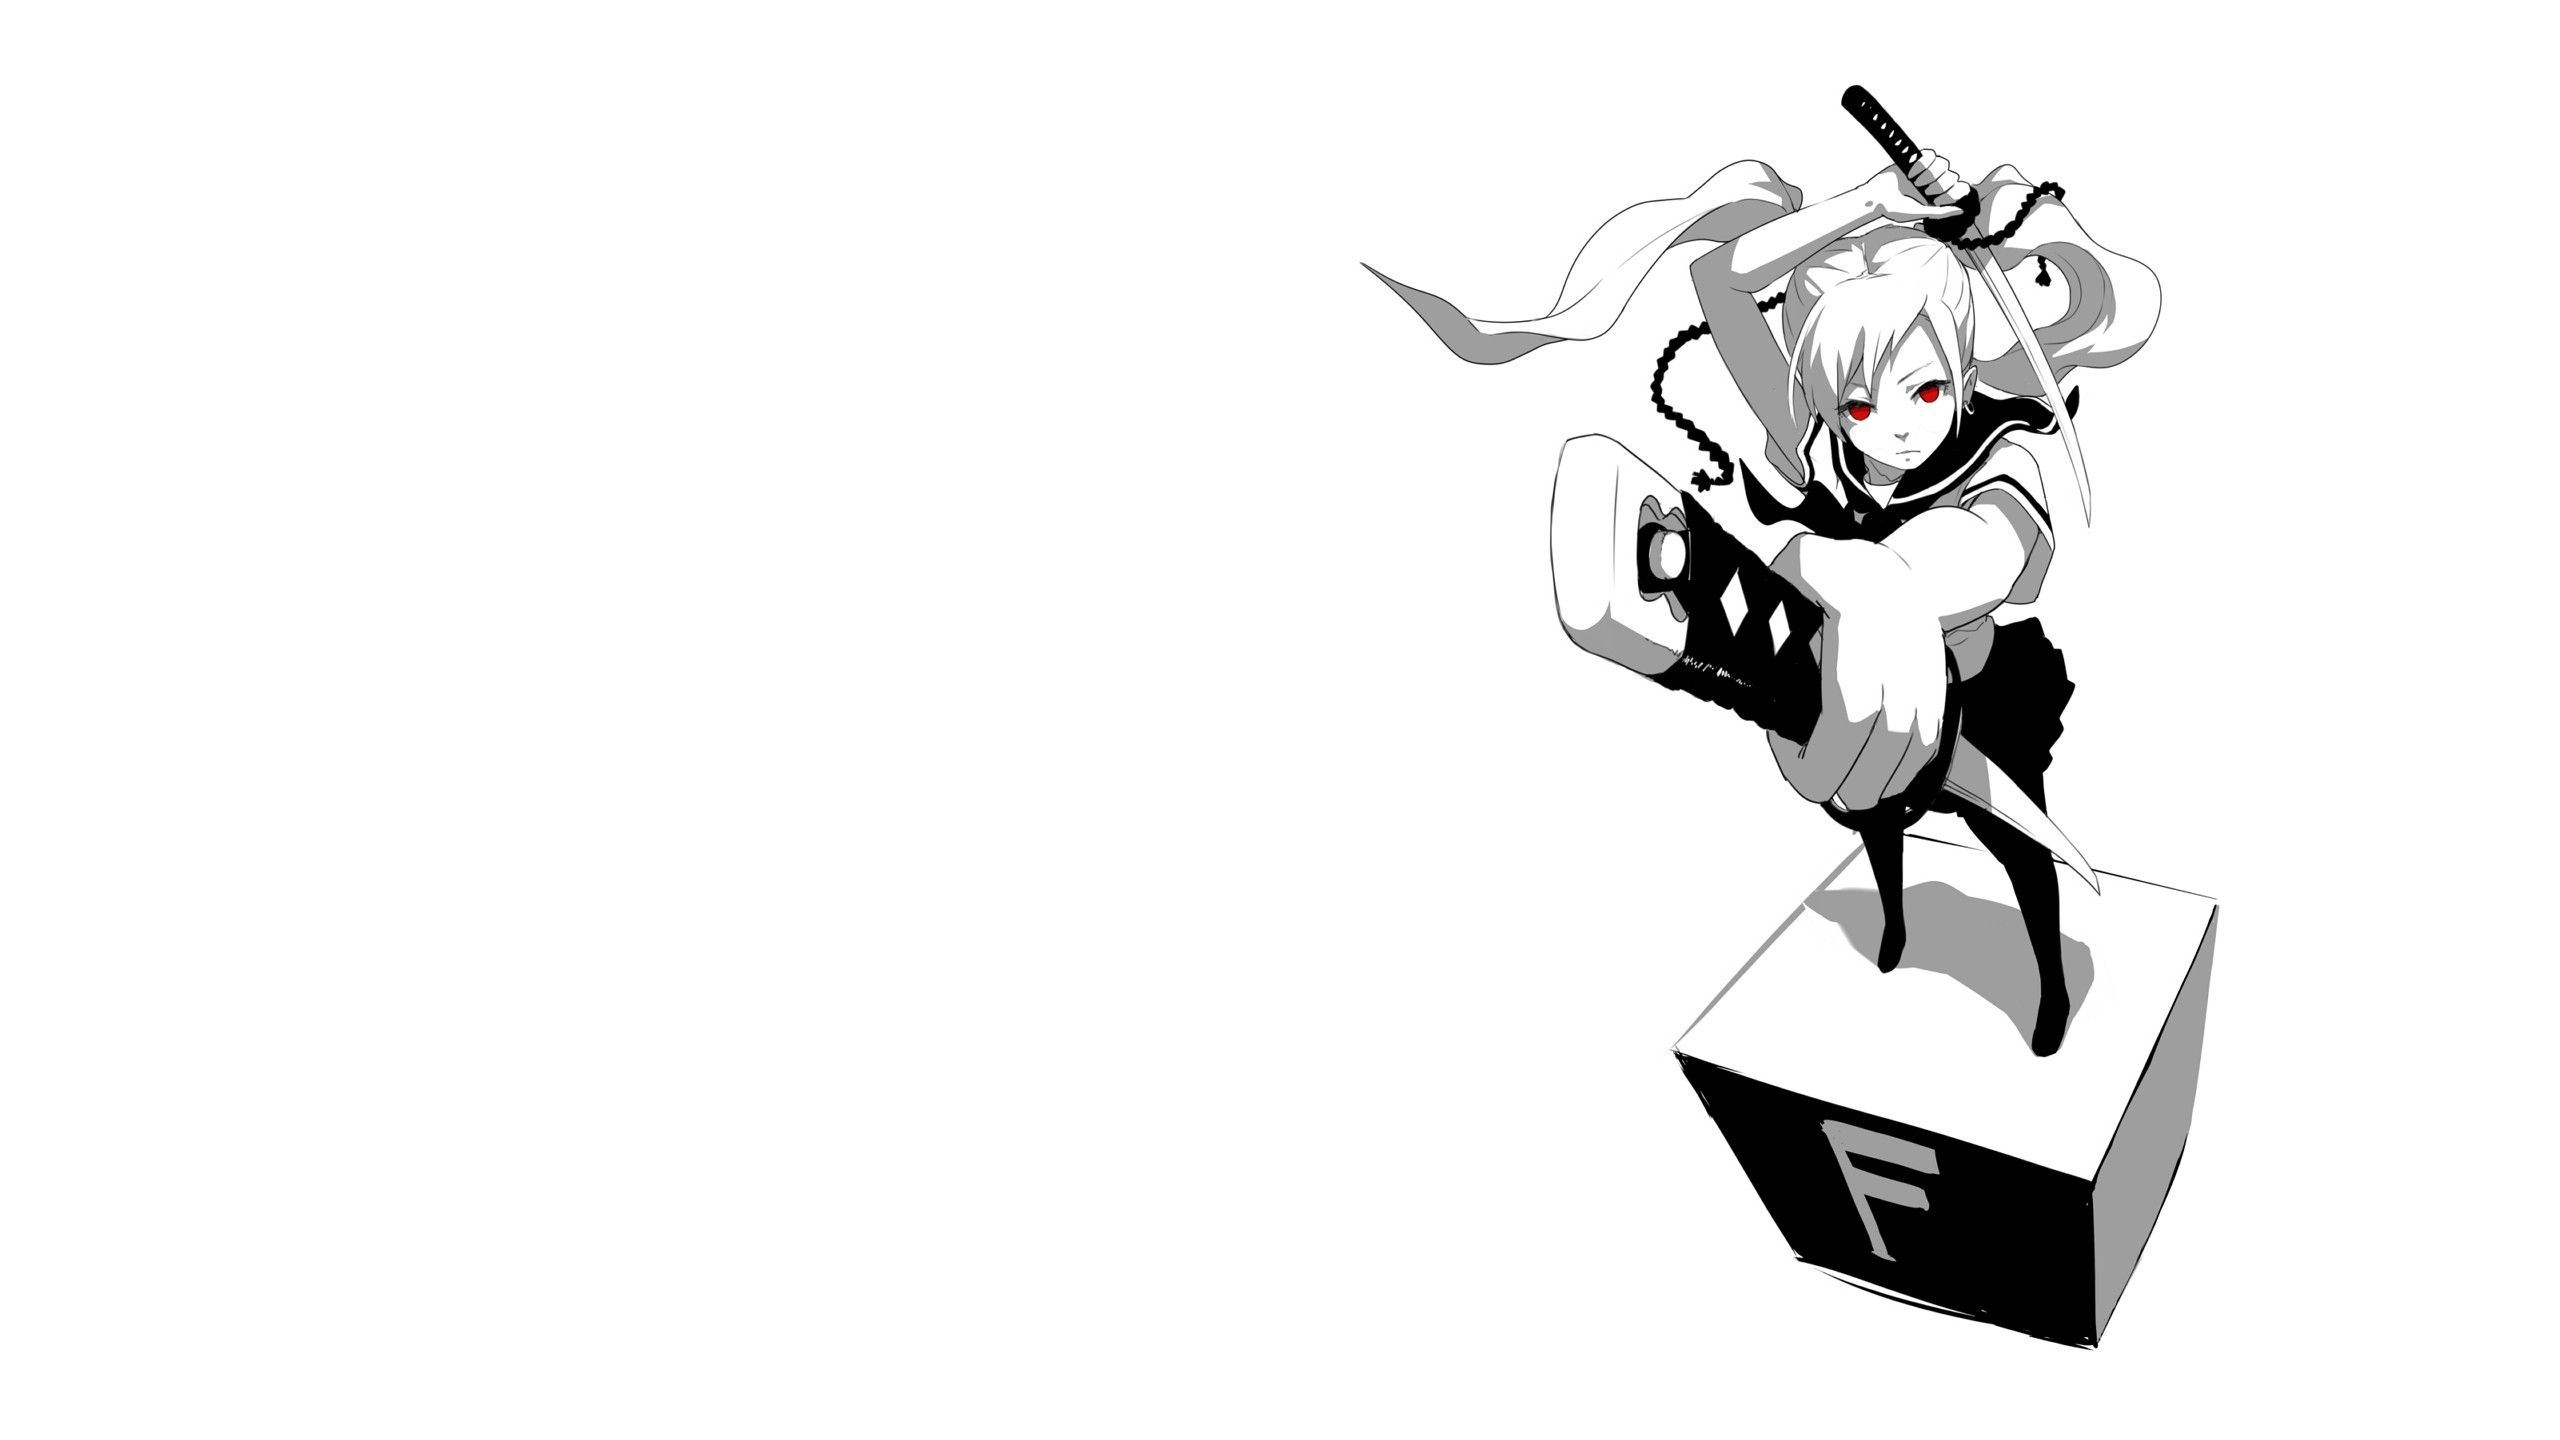 Black and White Anime Wallpapers - Top Free Black and ...